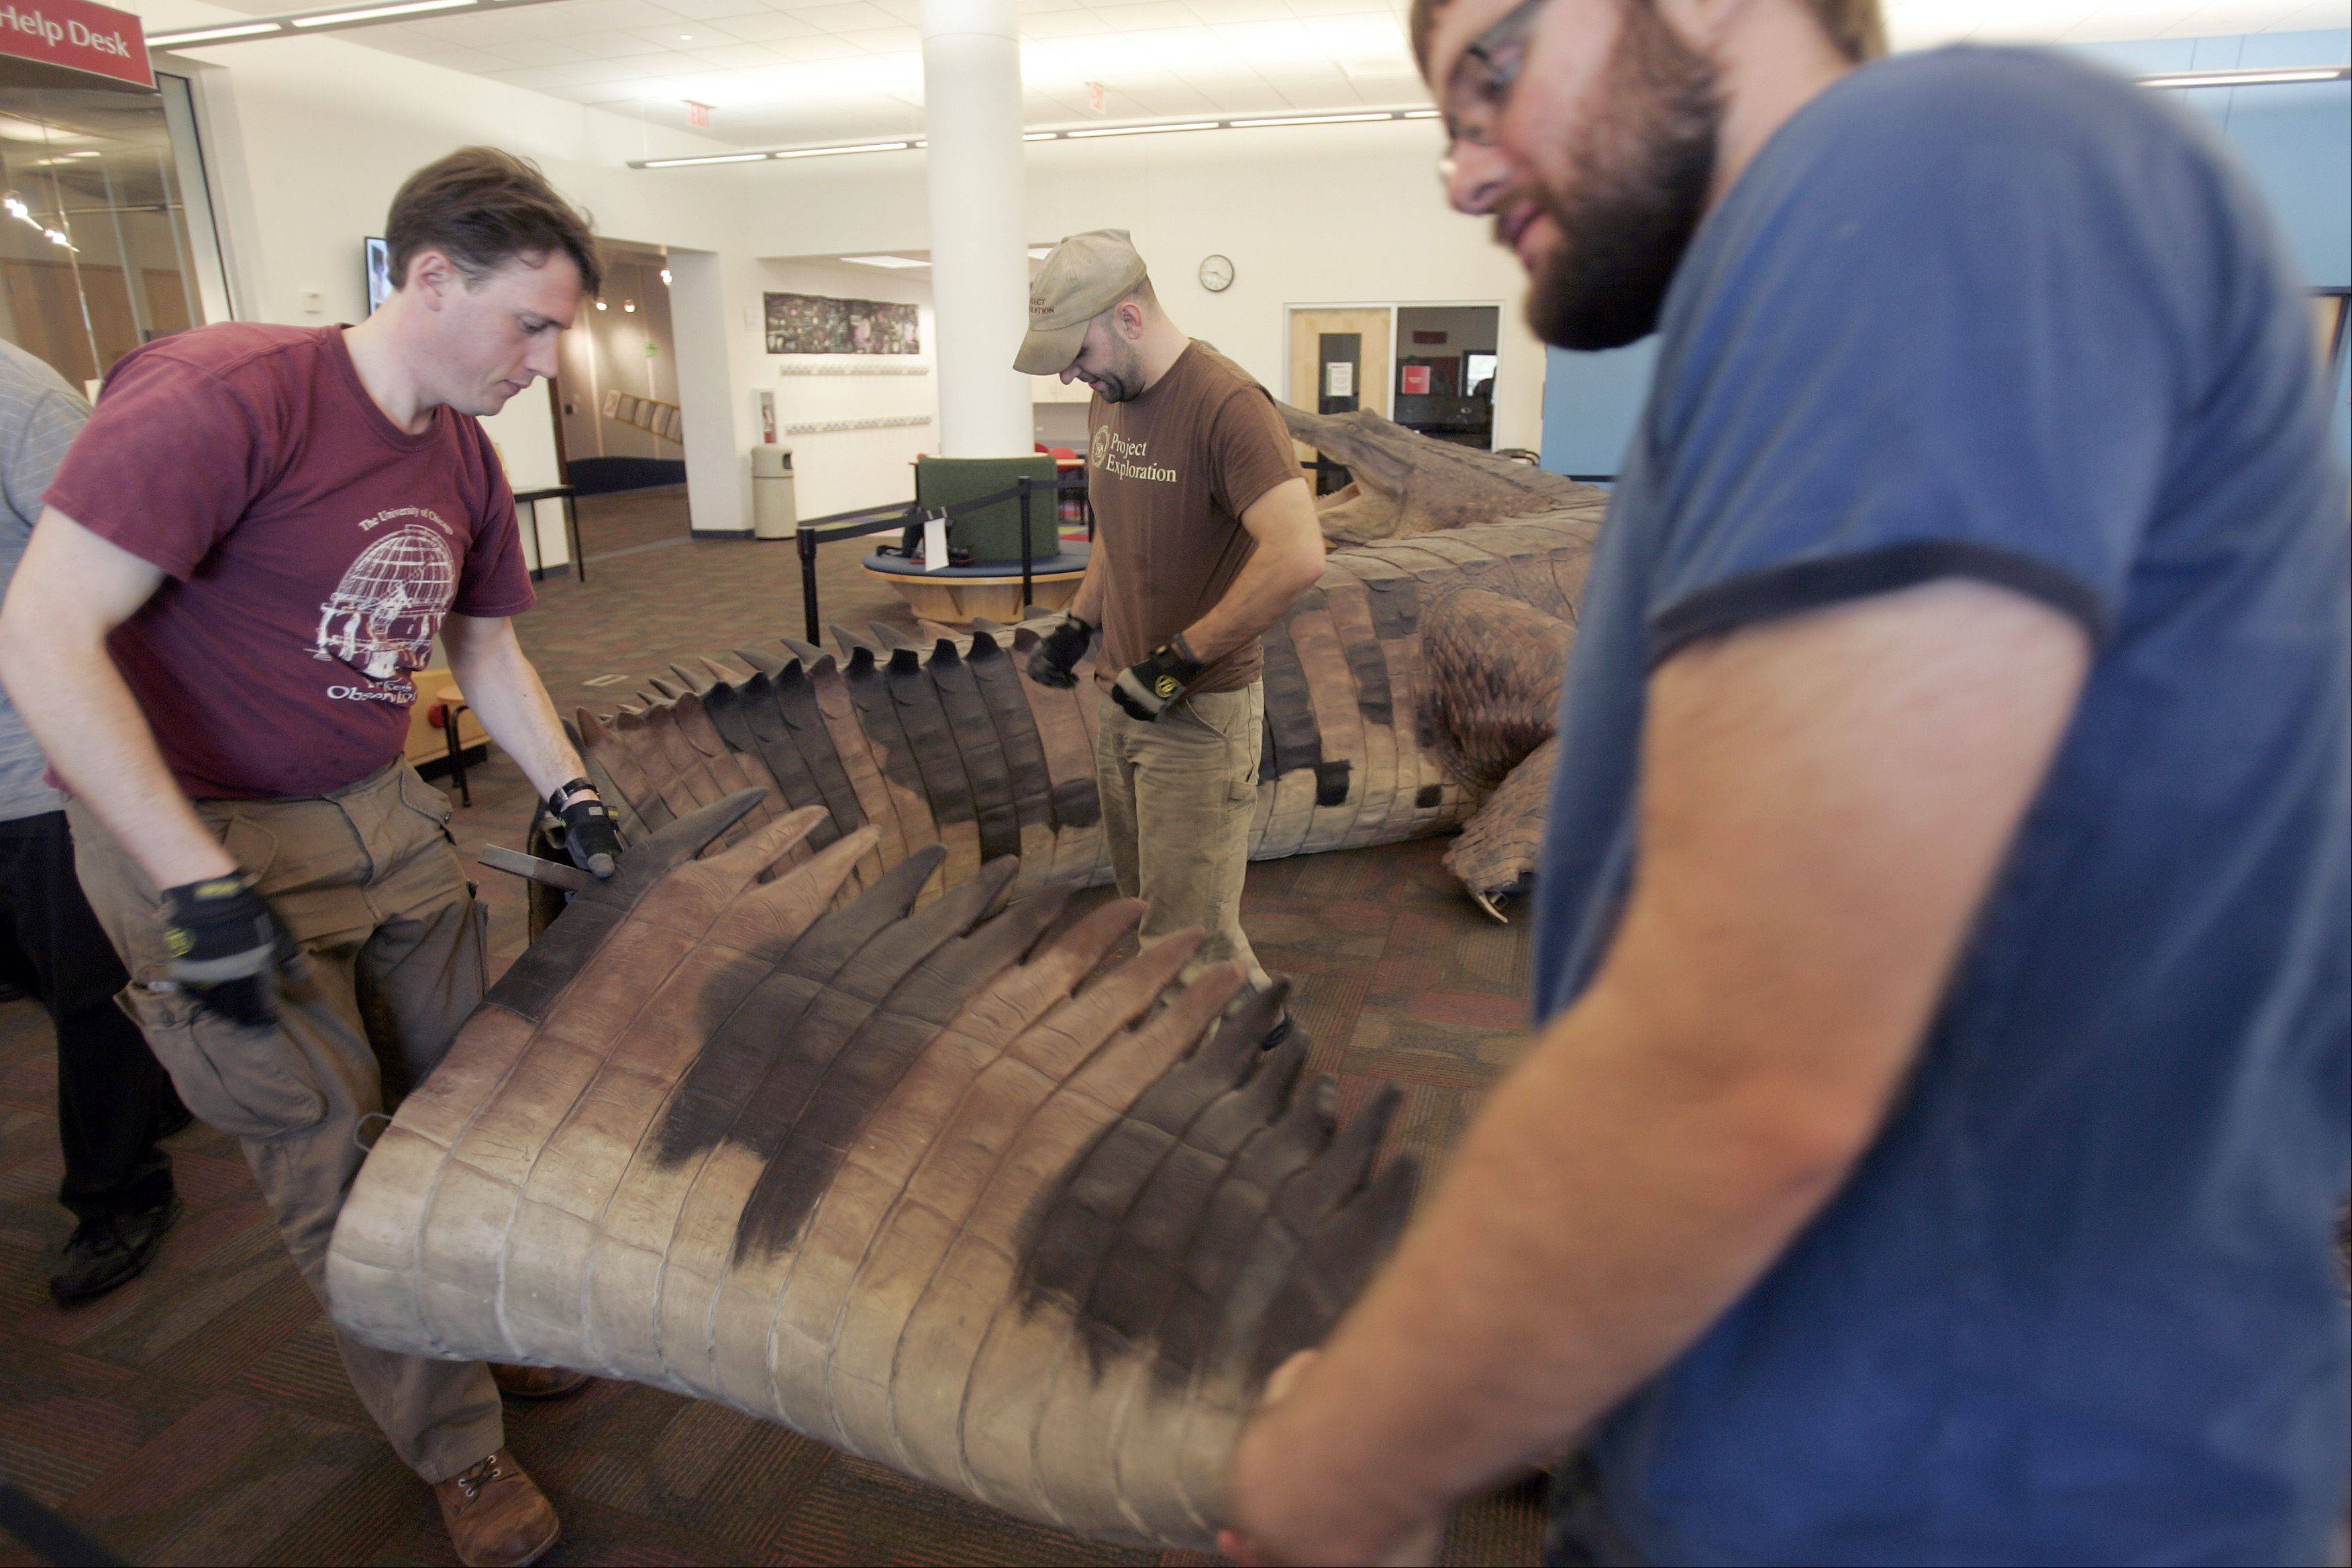 Joe Cottral of Project Exploration, left, and Jim Keith of Red Box help move part of the tail during the installation Tuesday of the SuperCroc exhibit at the Gail Borden Public Library.